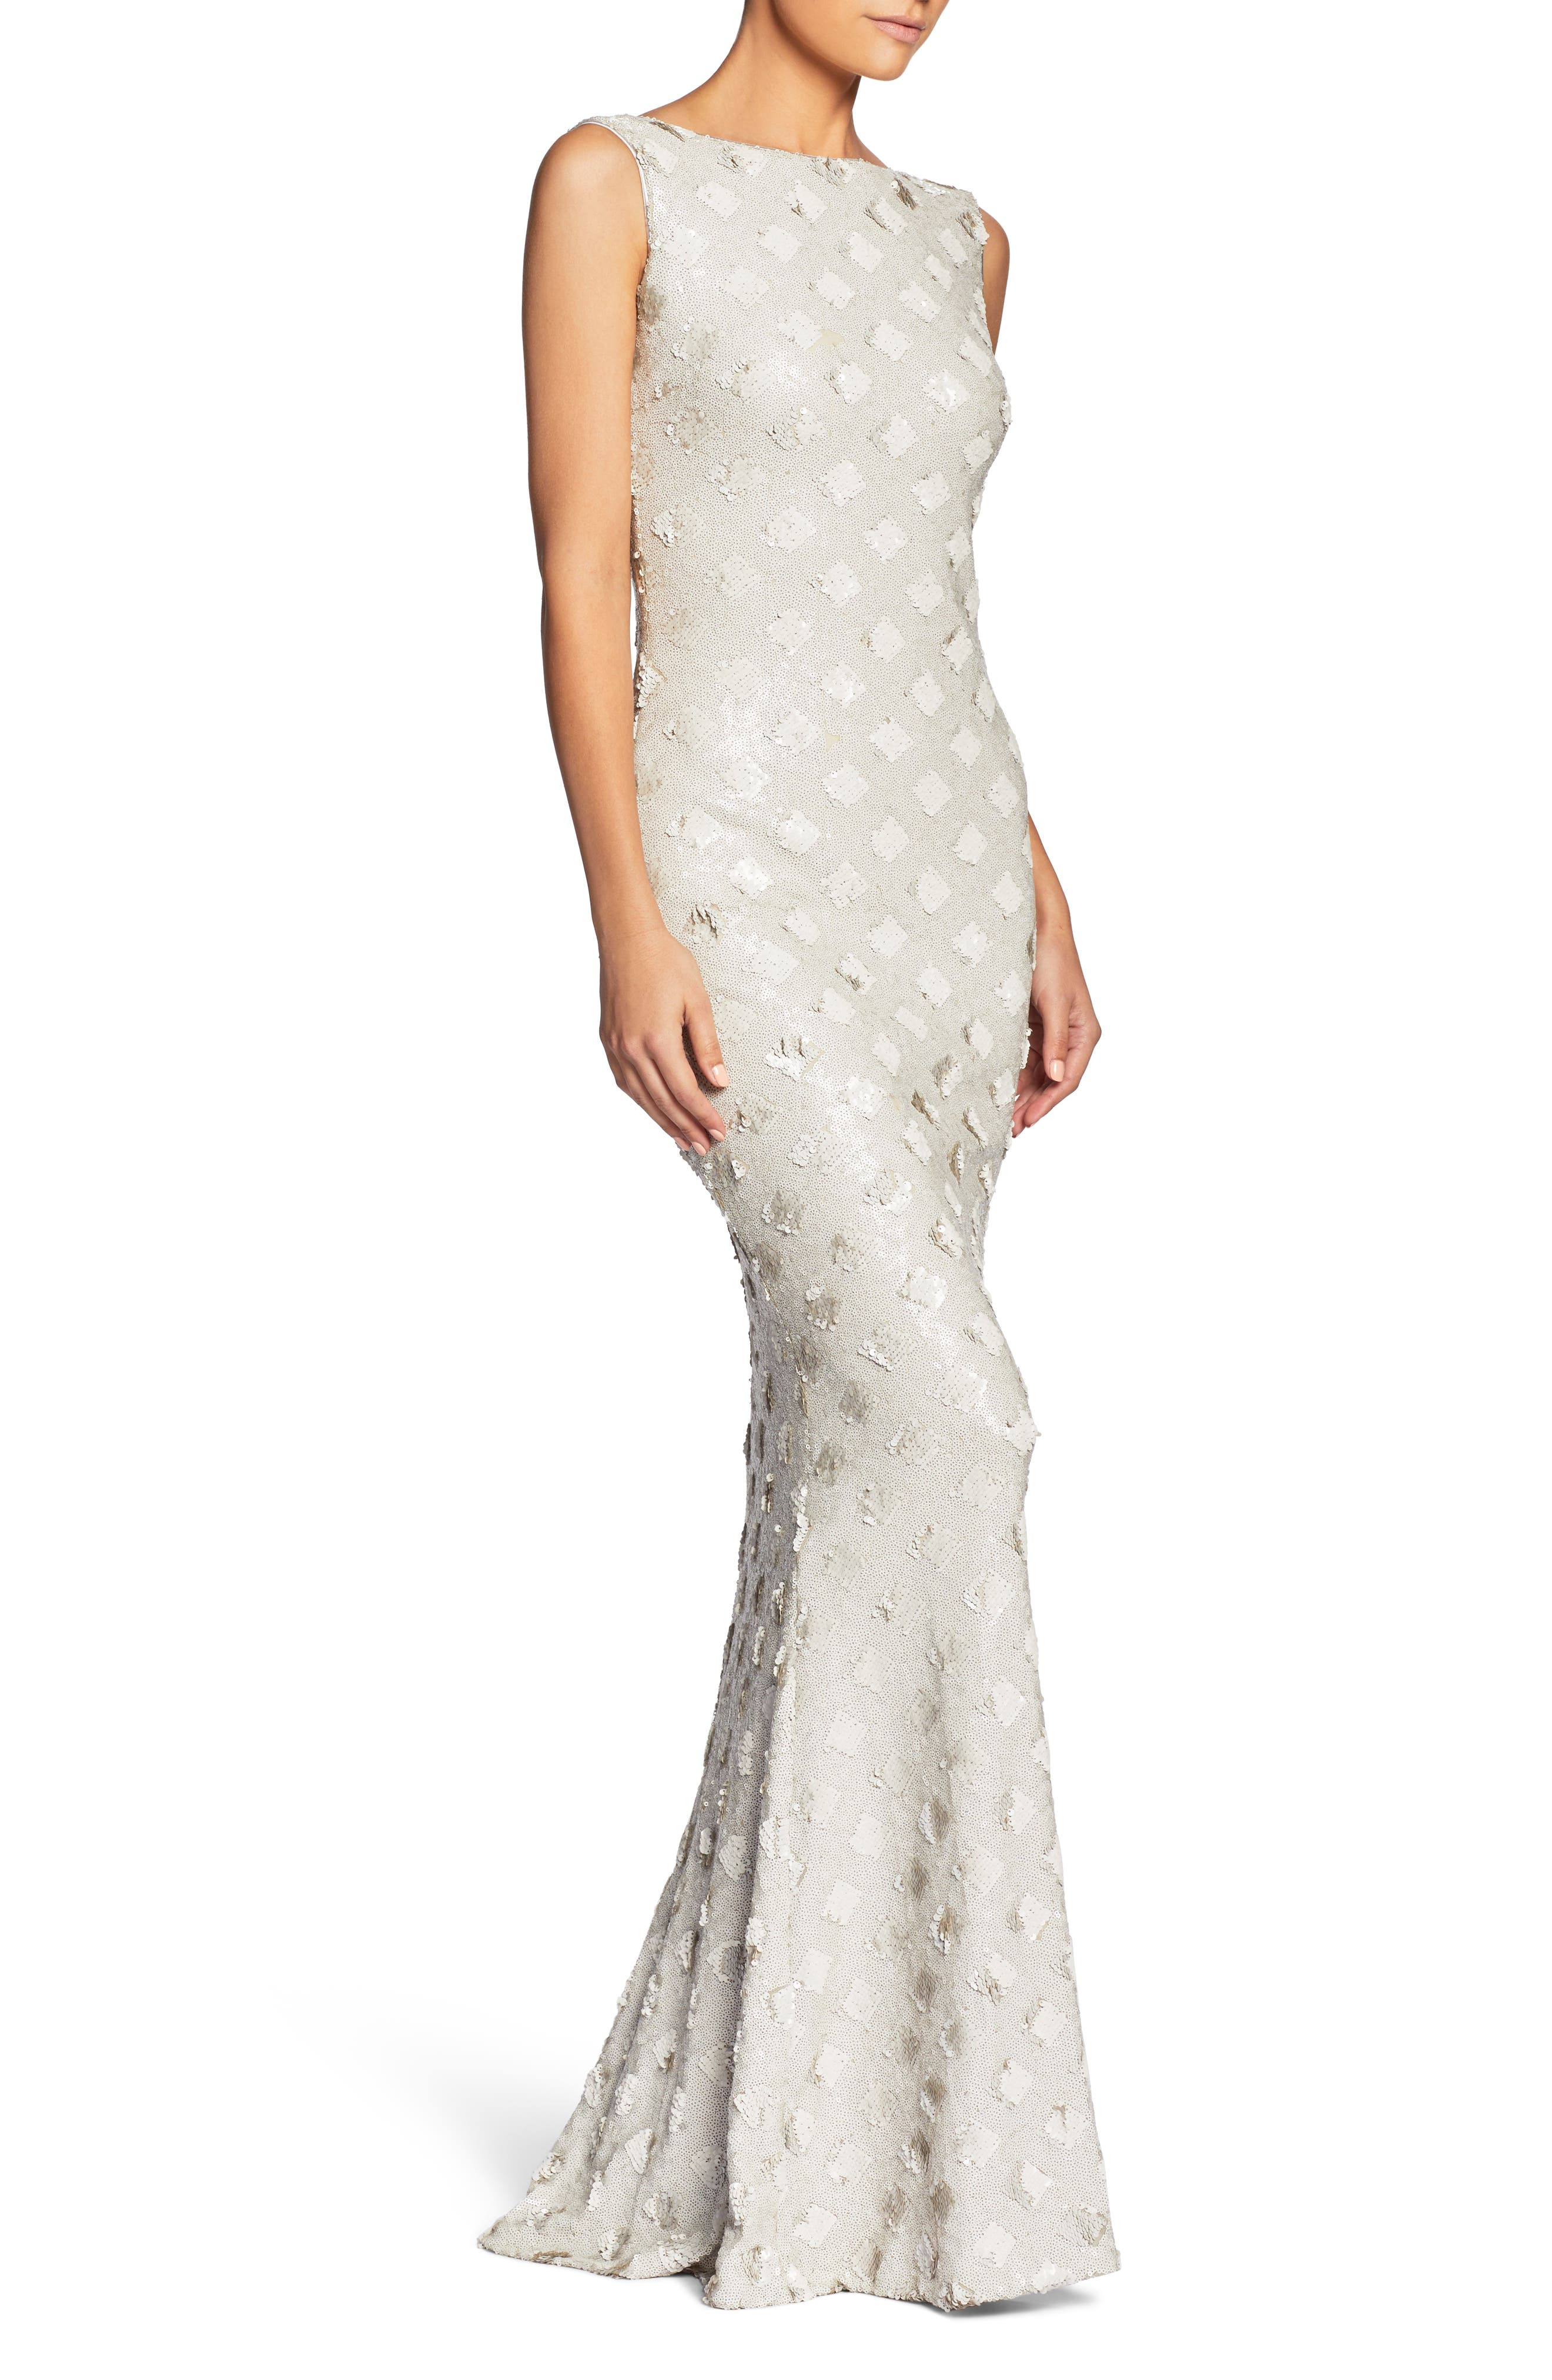 DRESS THE POPULATION, Yvette Sequin Trumpet Gown, Alternate thumbnail 3, color, 102